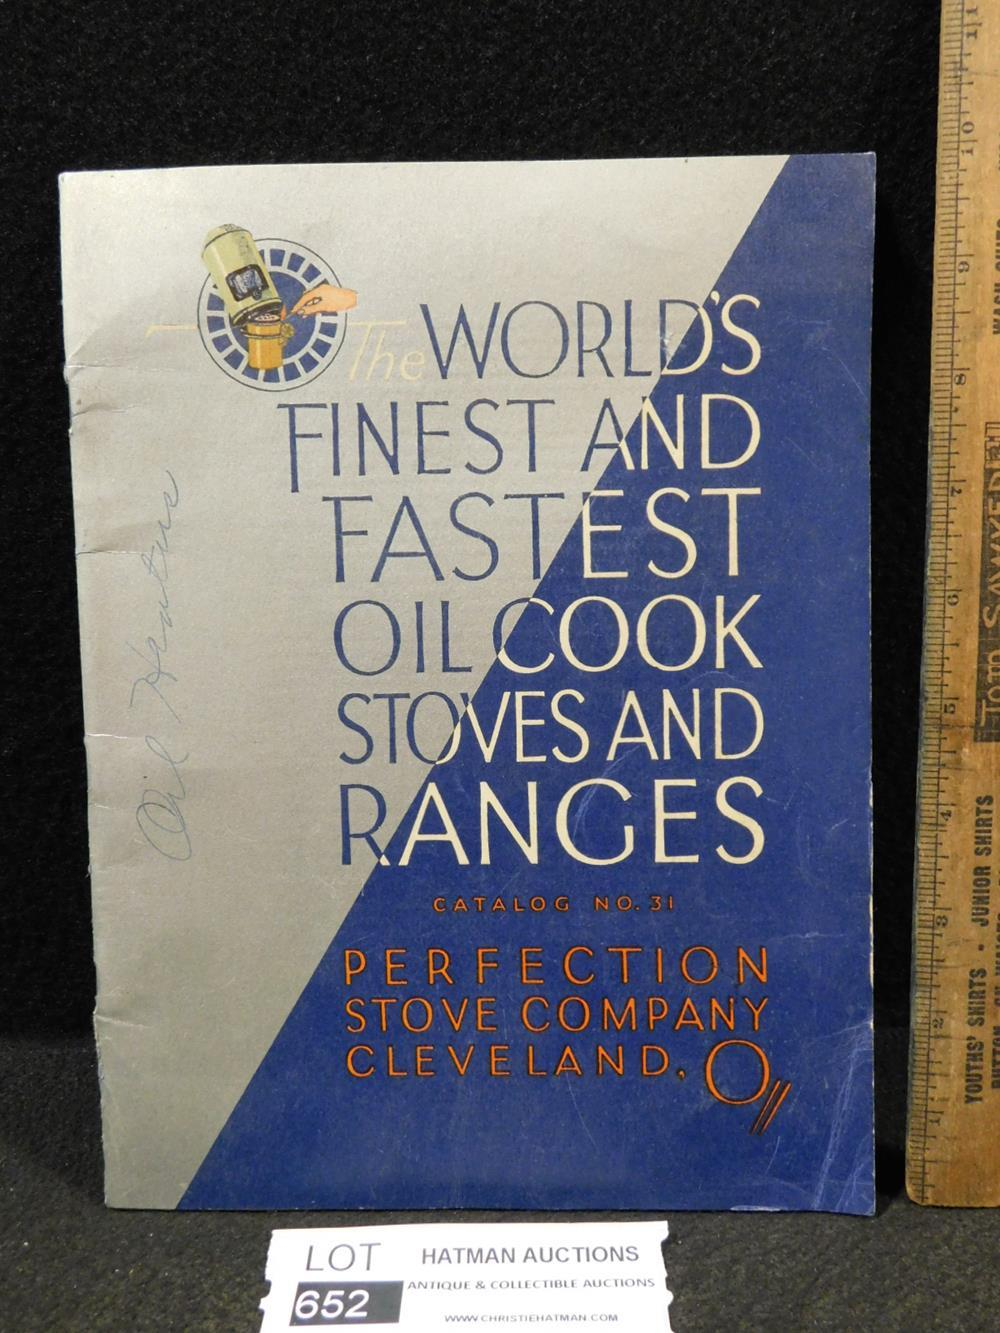 VINTAGE CATALOG WORLDS FINEST AND FASTEST OIL COOK STOVES AND RANGES BOOK